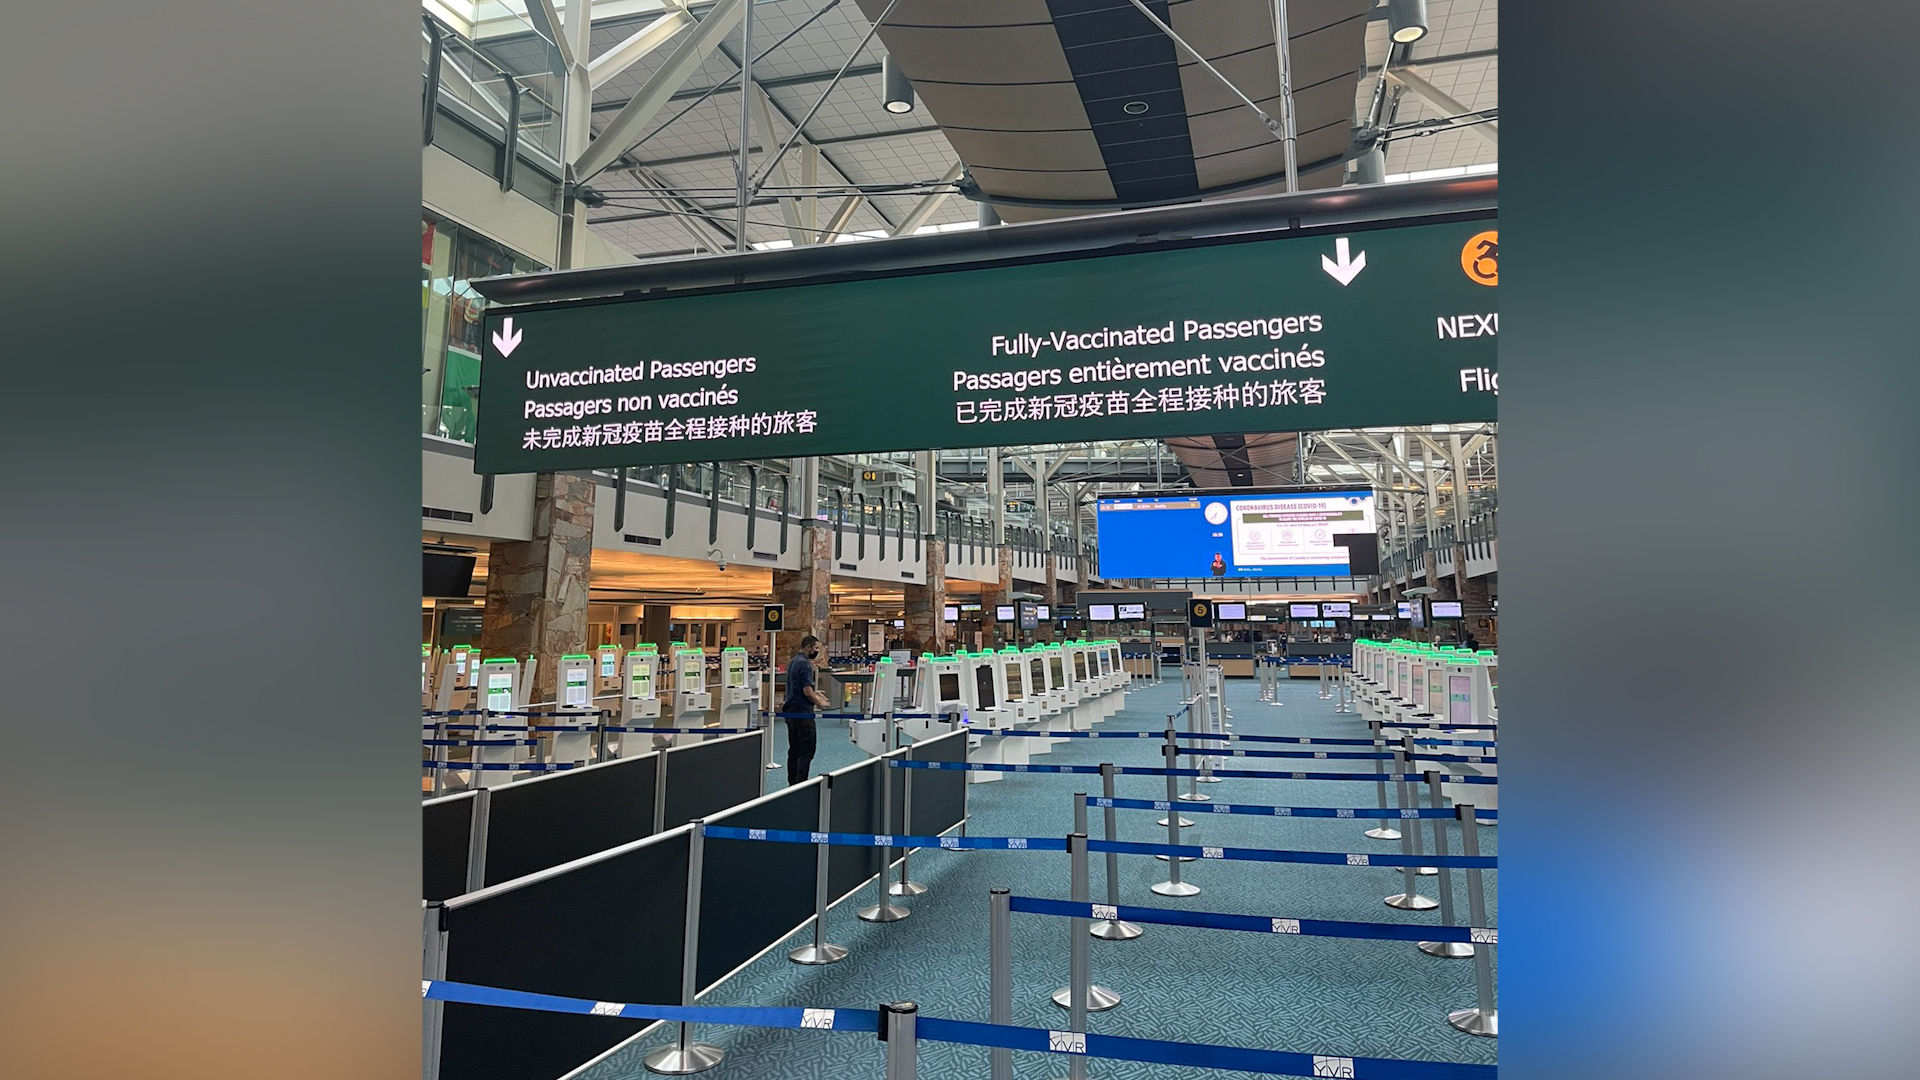 YVR no longer splitting passengers at arrivals terminal by COVID vaccination status